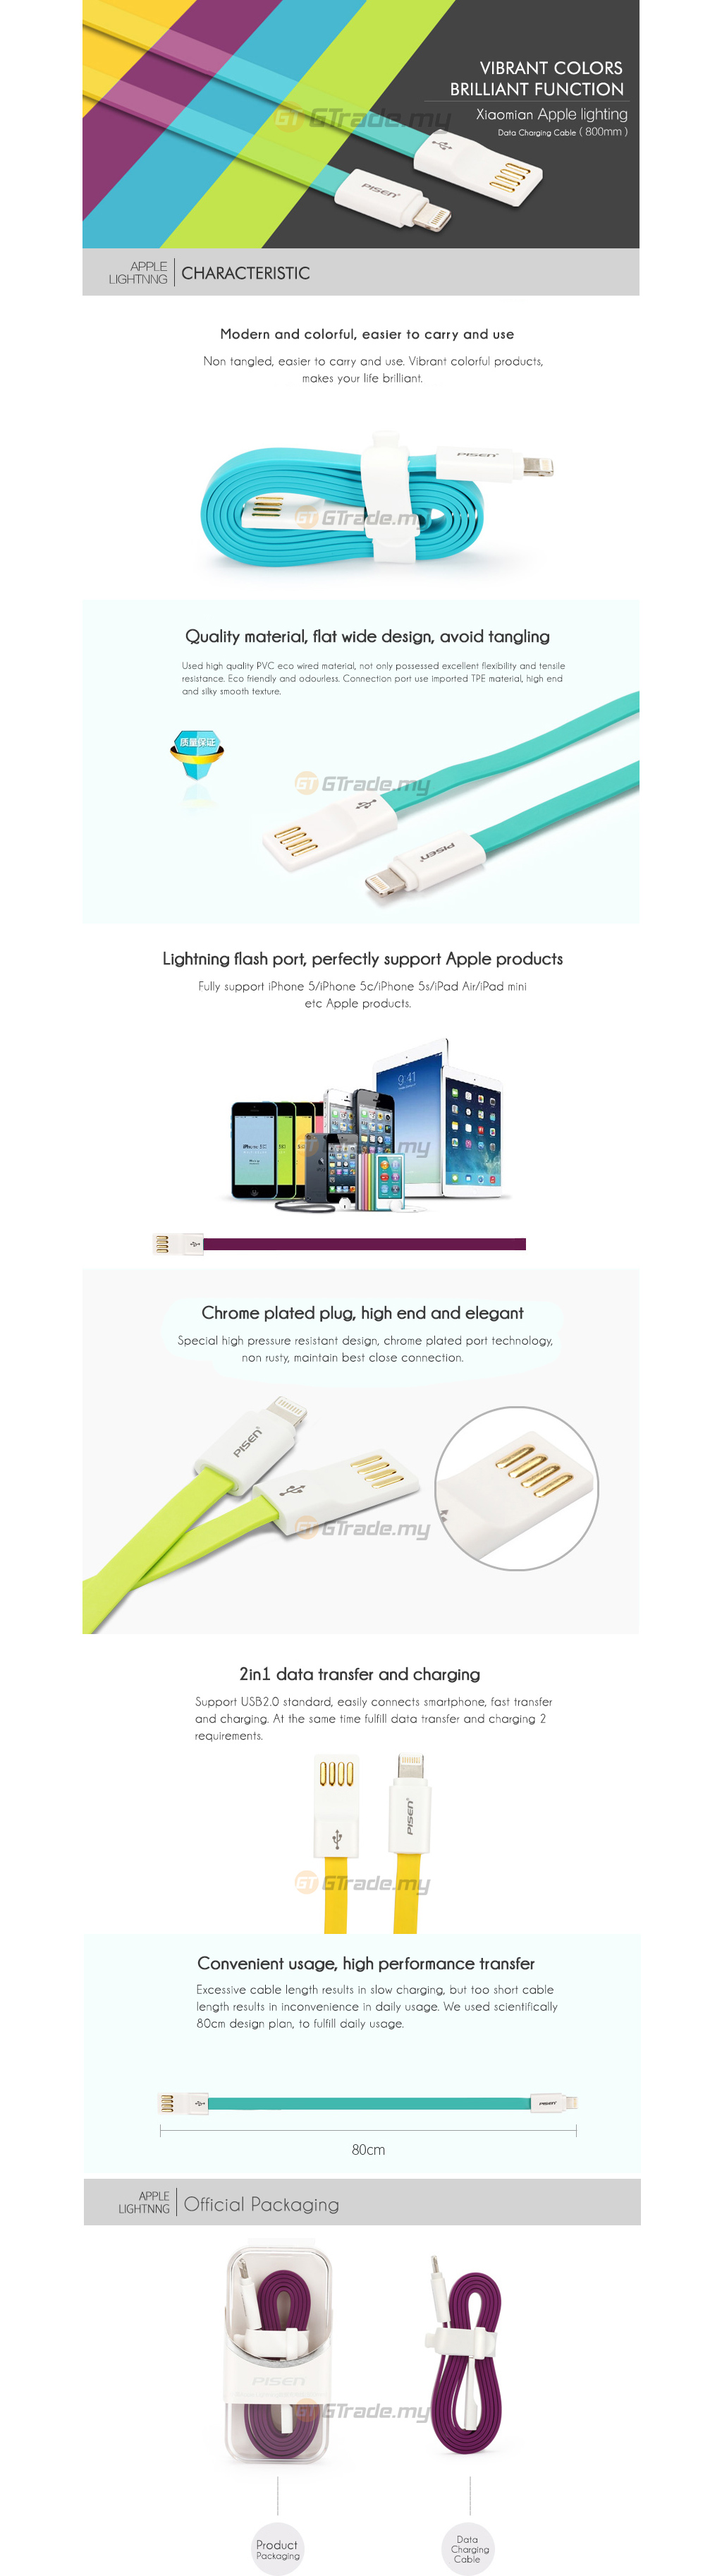 pisen-colorful-lightning-sync-charger-data-cable-apple-iphone-ipad